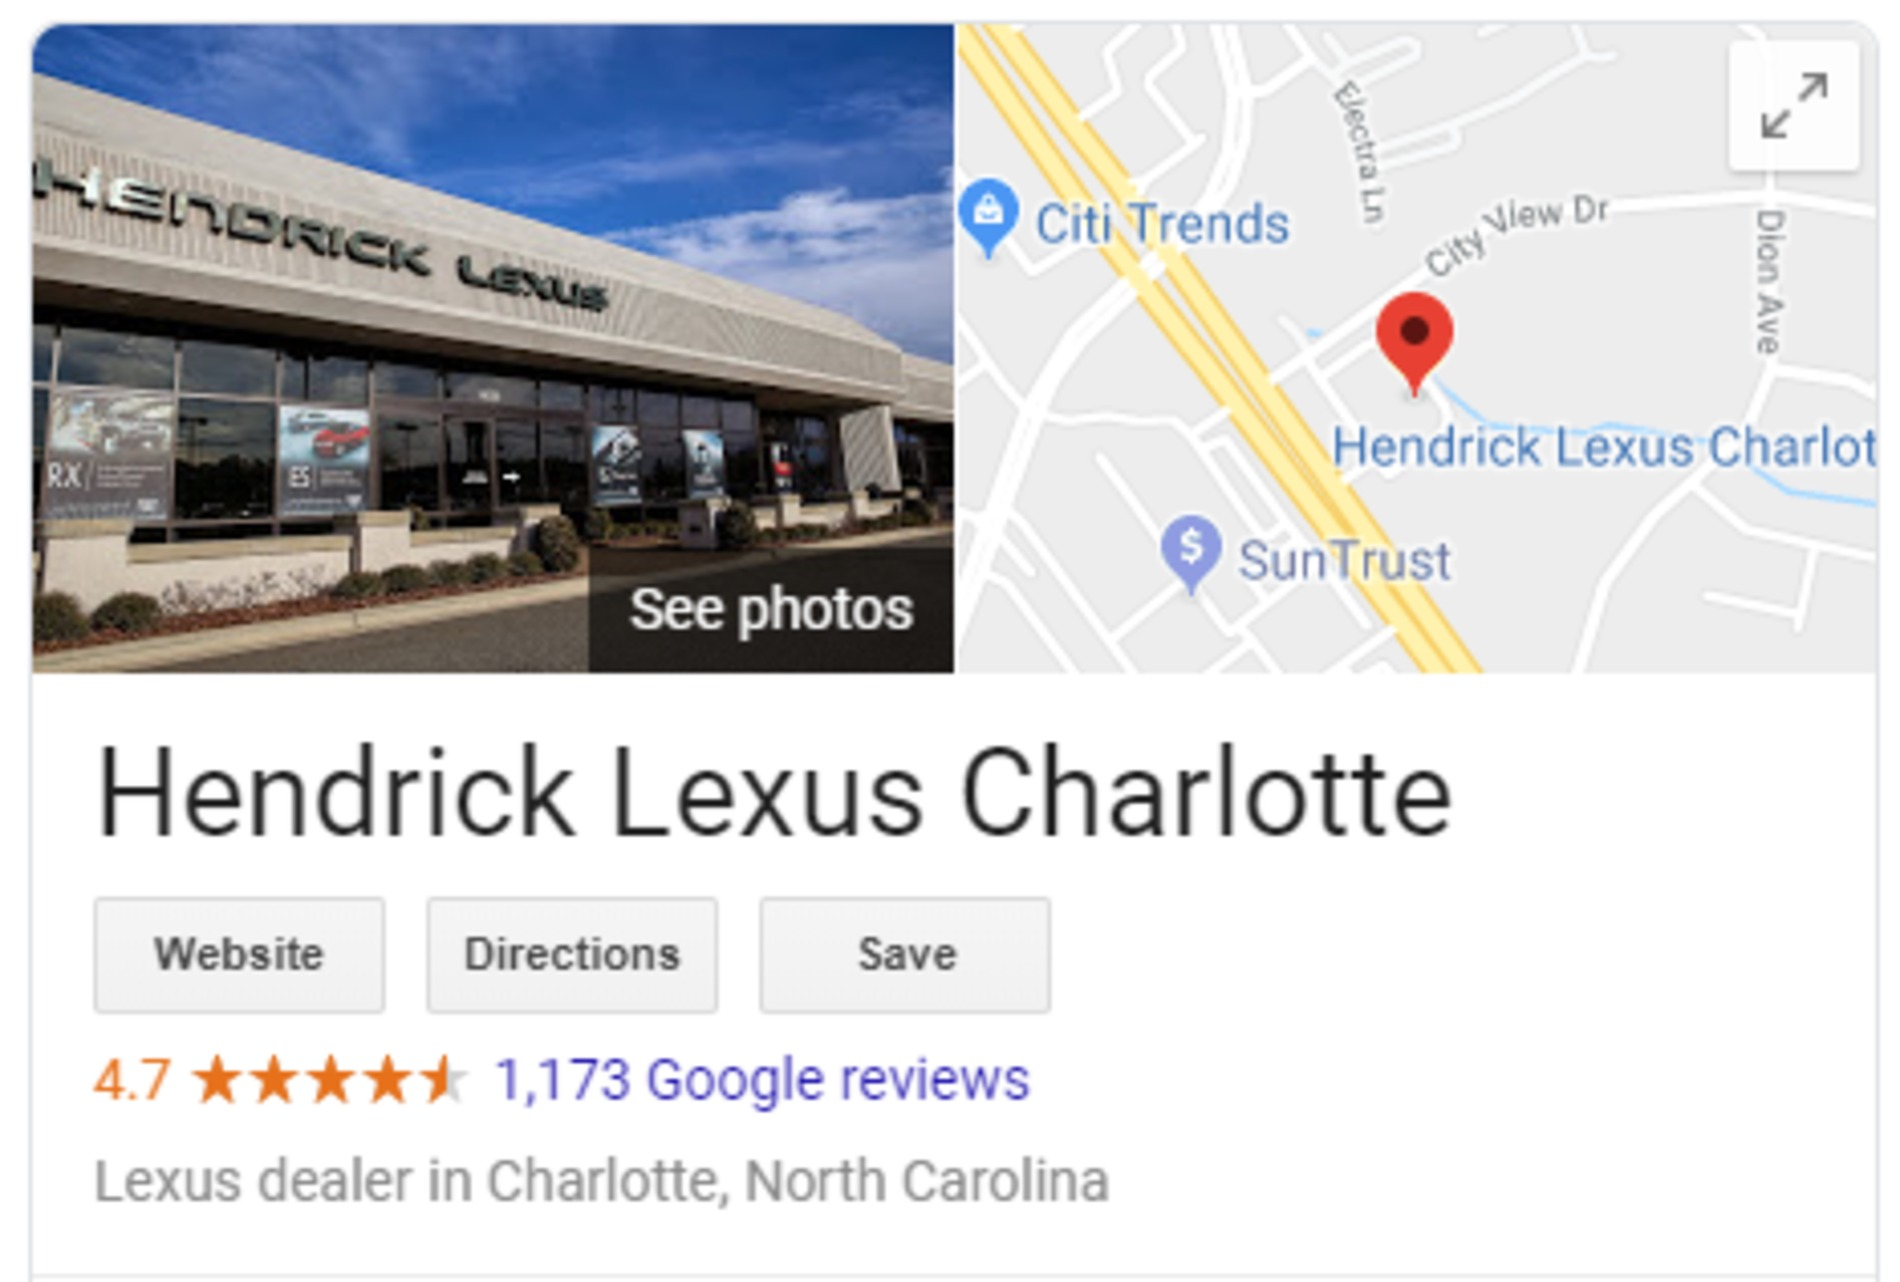 Google review example.